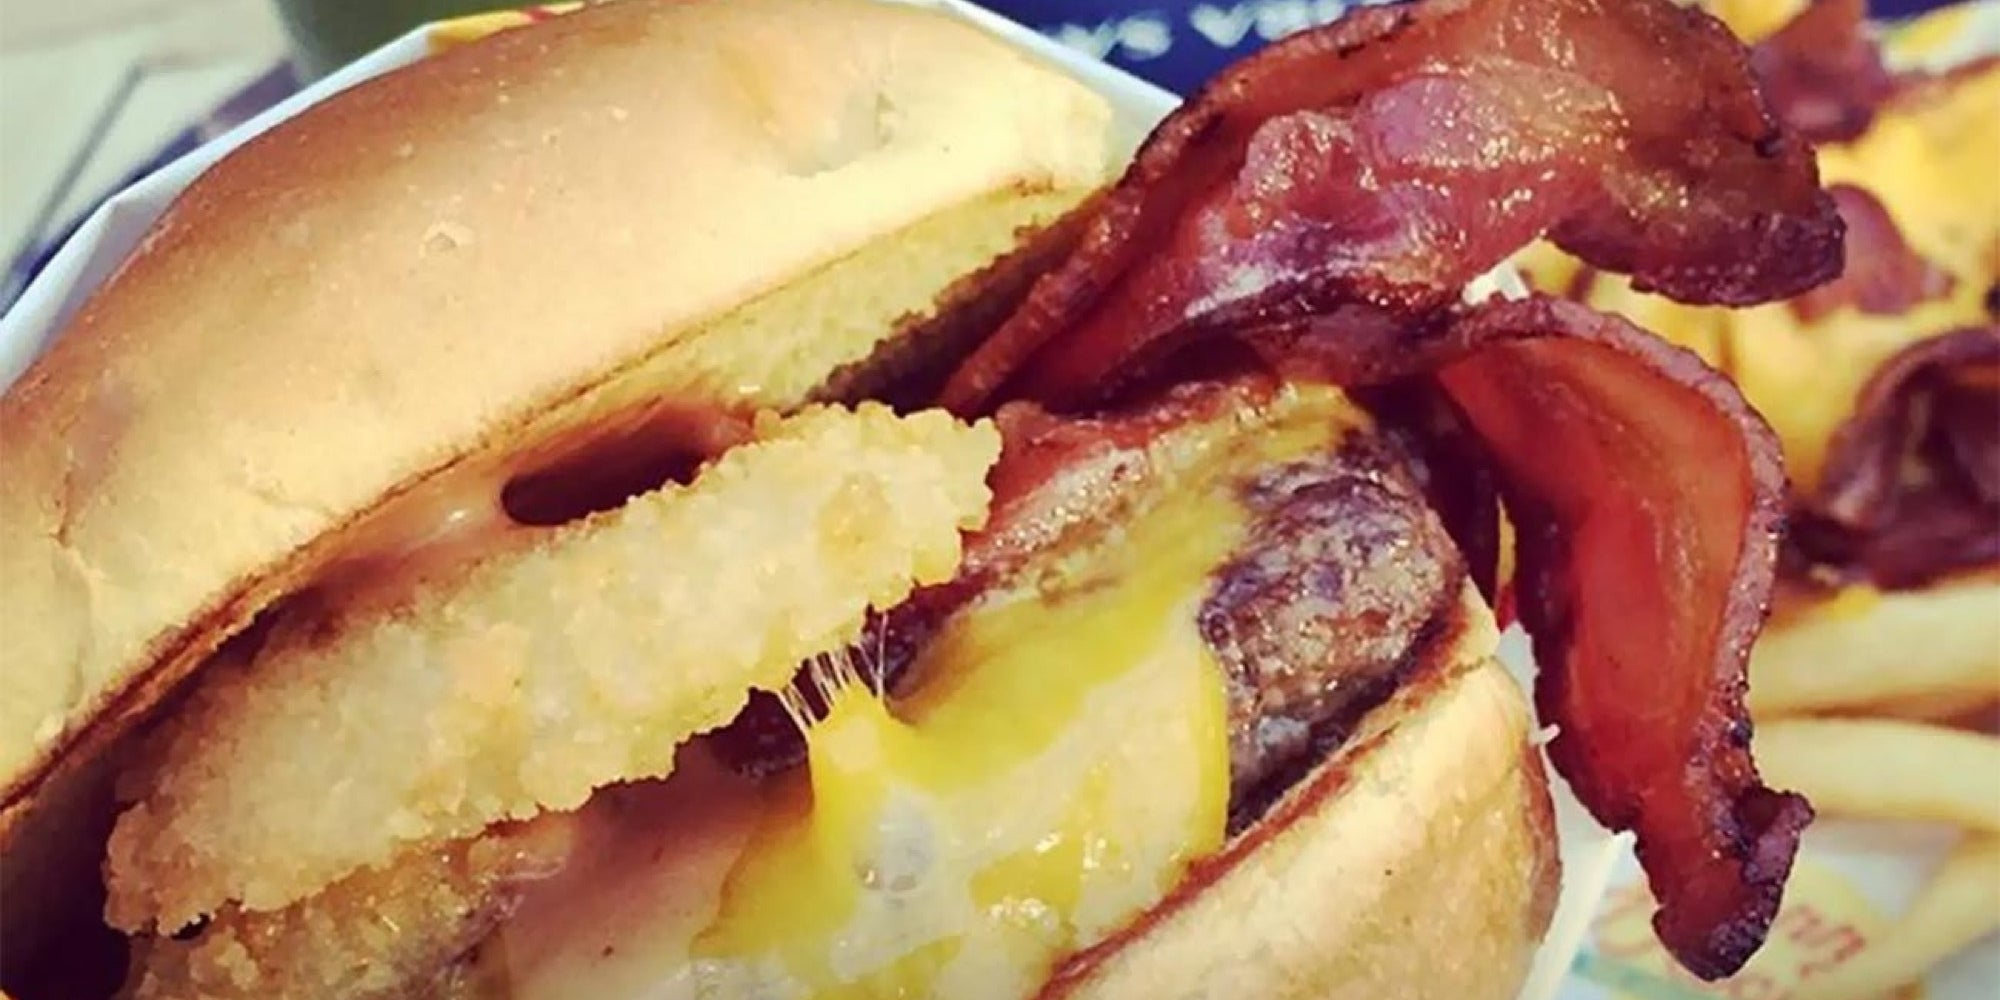 To Celebrate National Hamburger Day, Here are 8 Franchises That Know How to Hit the Spot